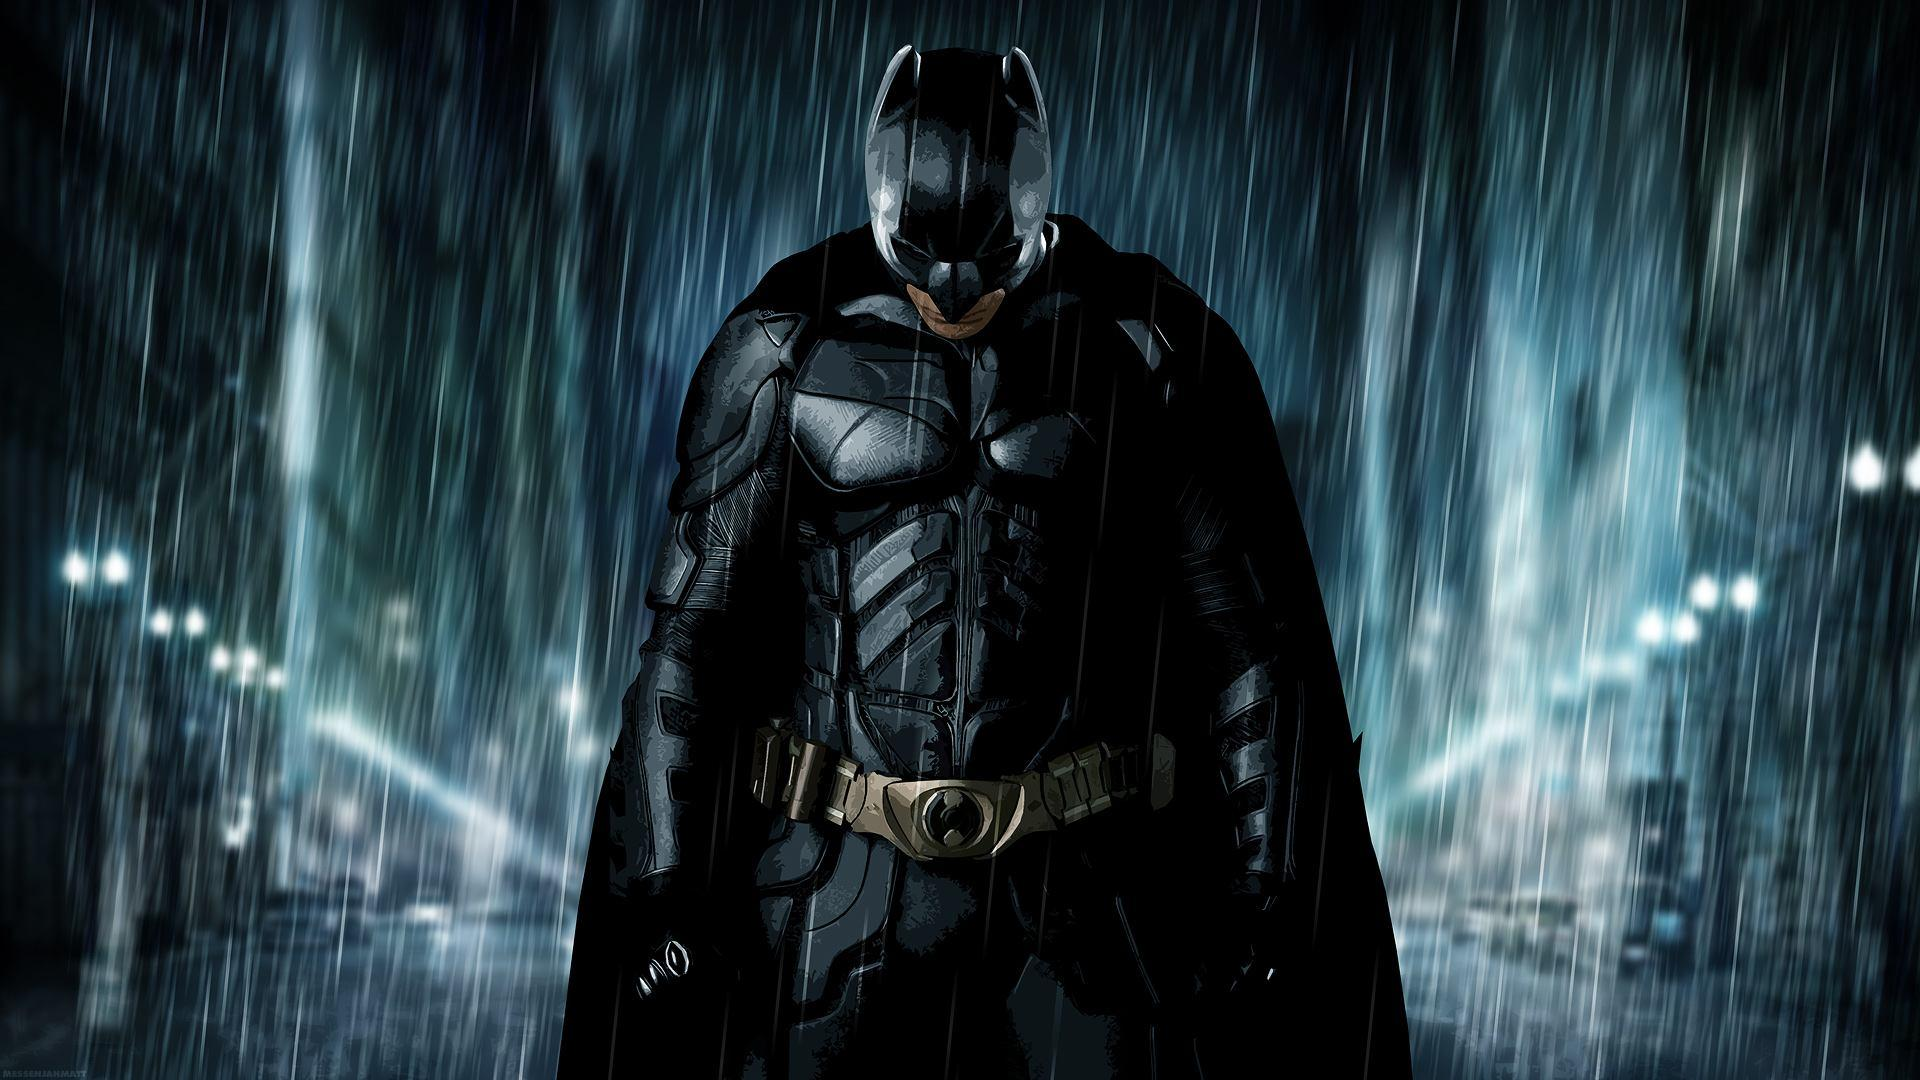 Batman - HD Movie Wallpapers - Free Download